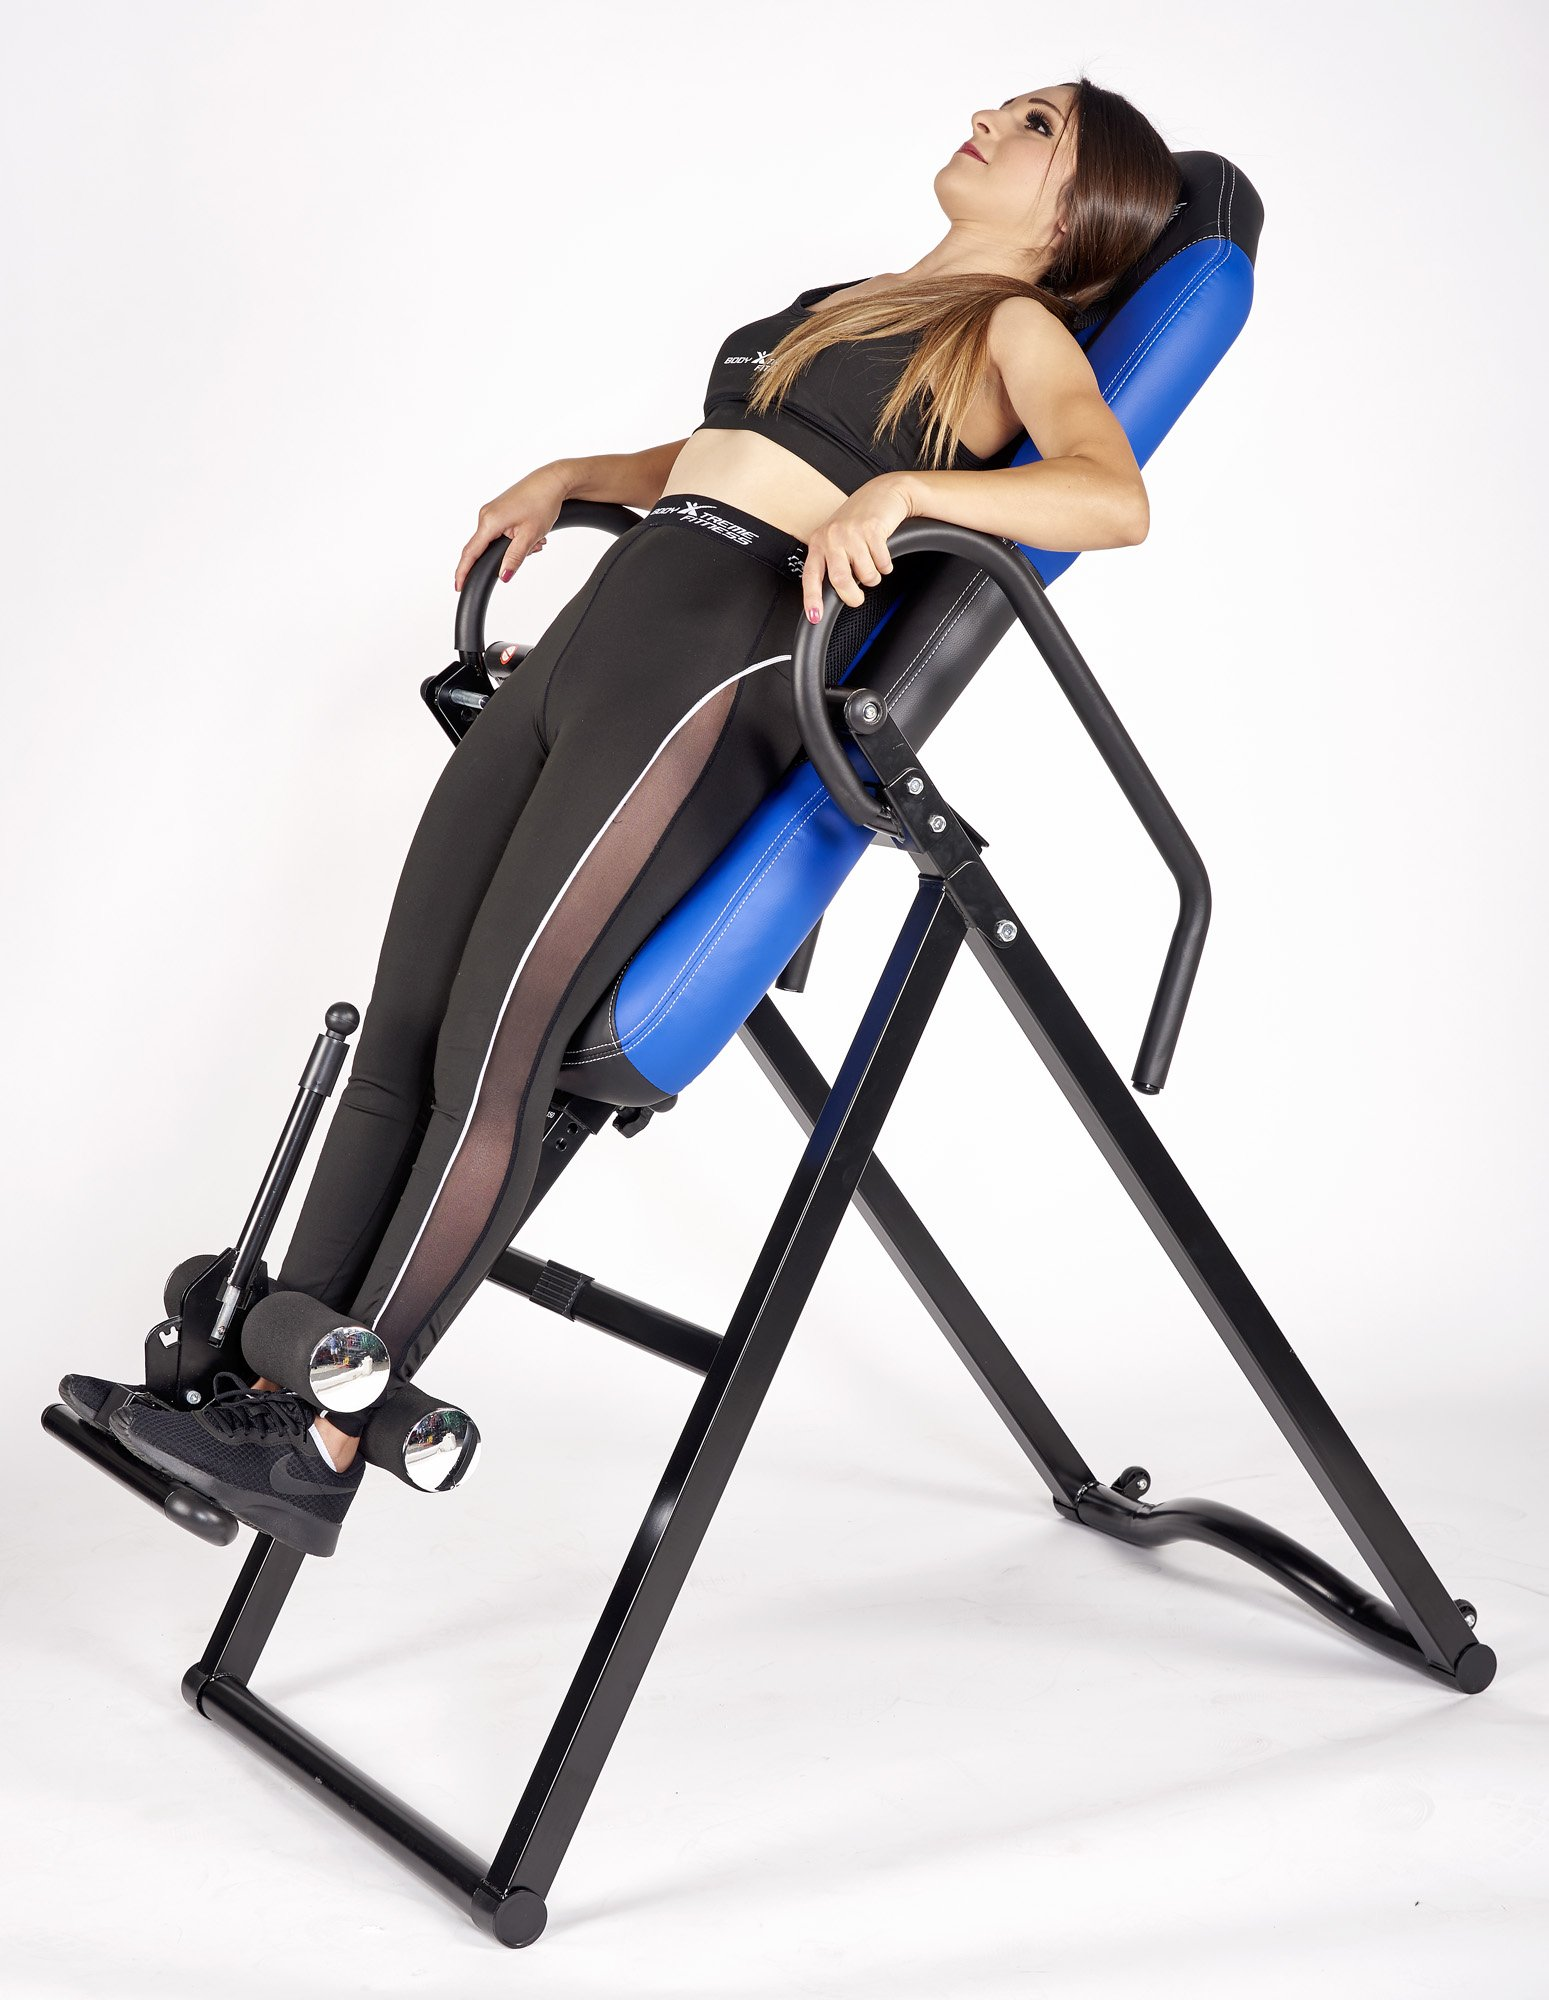 Body Xtreme Fitness ~ Inversion Table, Advanced Heat and Massage Therapeutic Inversion Table, Comfort Foam Backrest, Back Fitness Therapy Relief + BONUS Cooling Towel by Body Xtreme Fitness USA (Image #3)